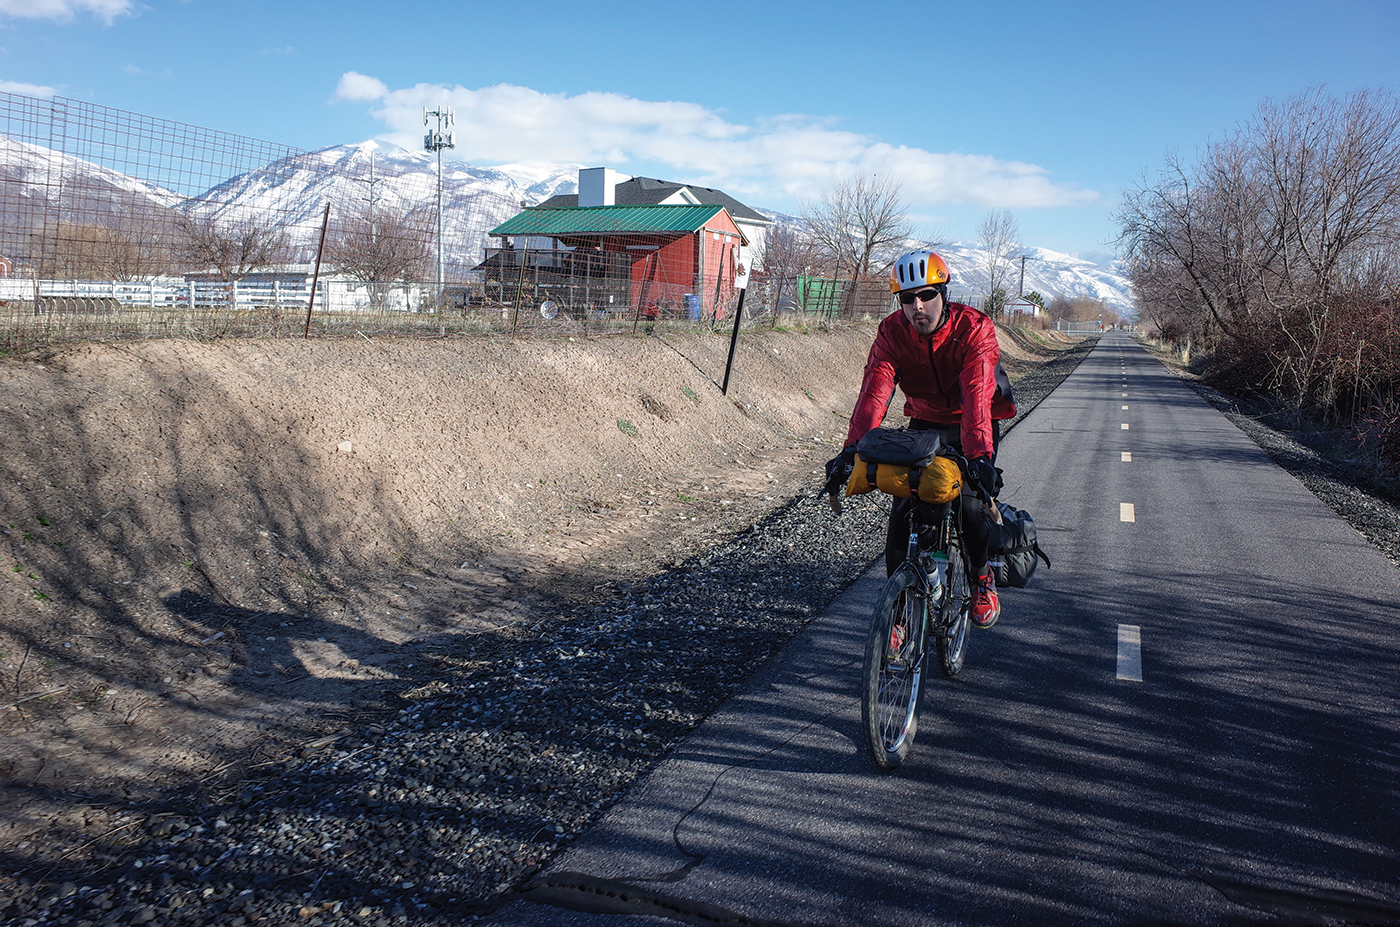 In June of 2018, a bicycle-path network from Provo to Ogden running over 100 miles, was finally completed with the construction of the Jordan River Bridge in Salt Lake City.